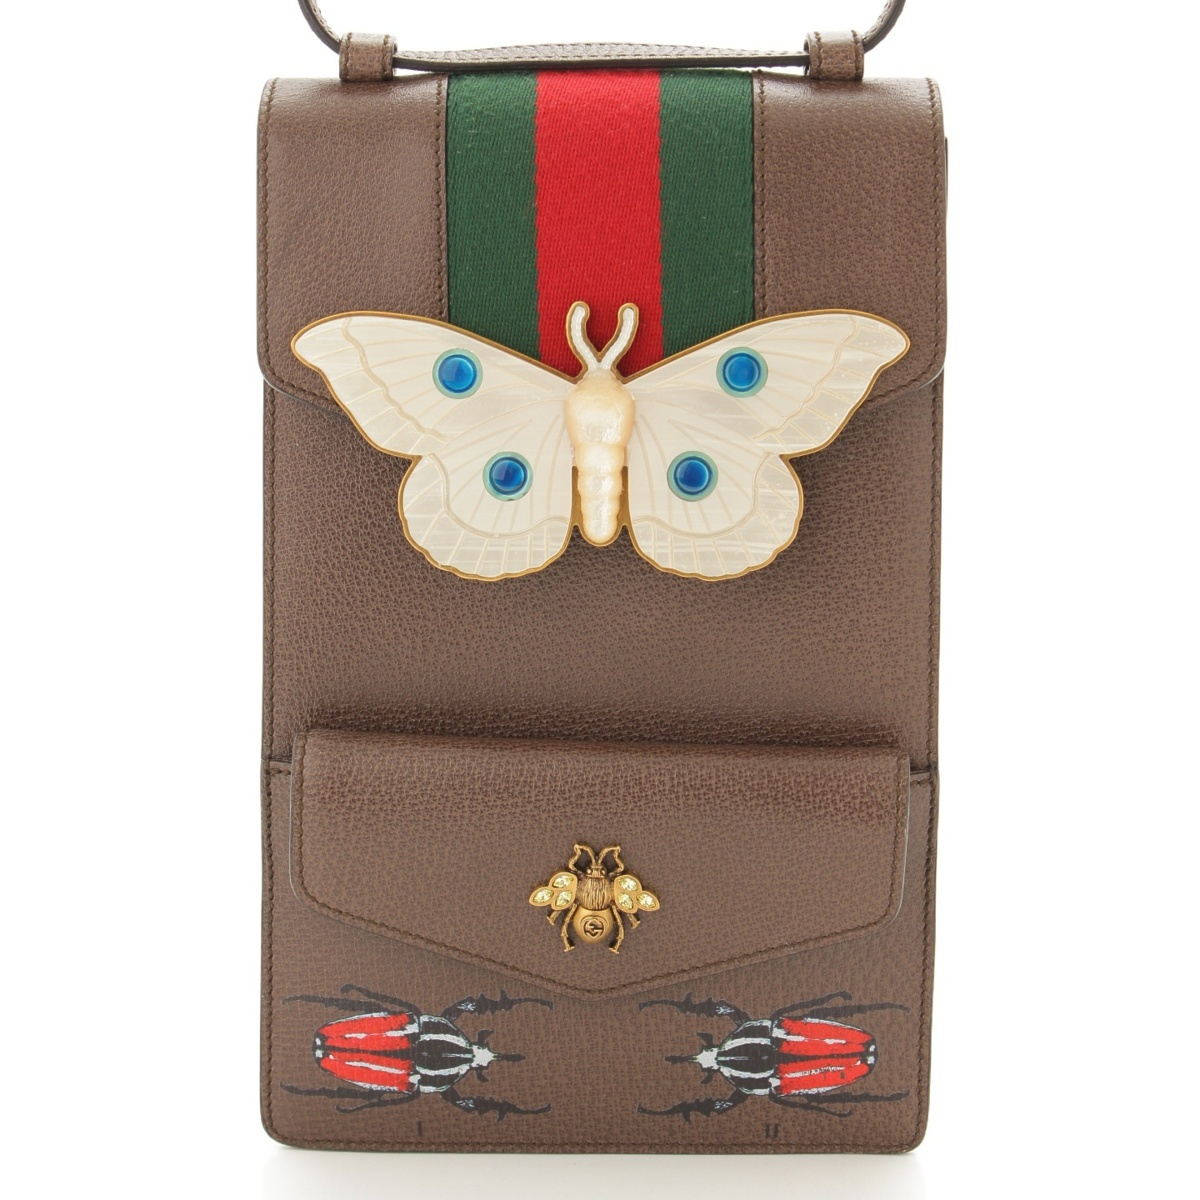 new products bfd63 c060a グッチ(Gucci) 中古 通販 retro レトロ